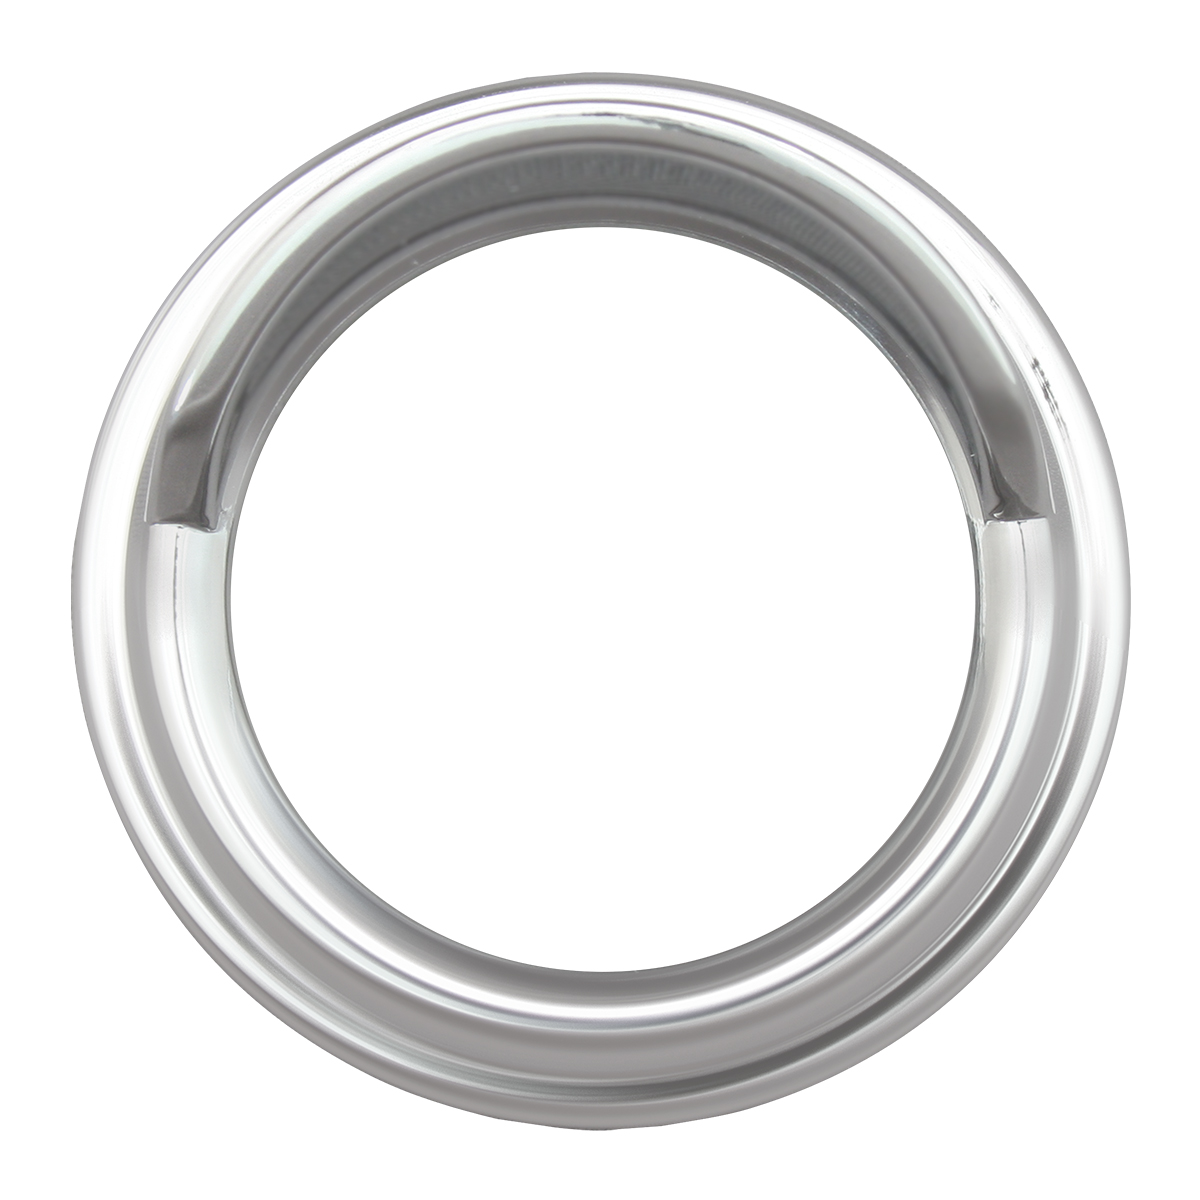 68391 Chrome Plastic Small Gauge Cover for Pete